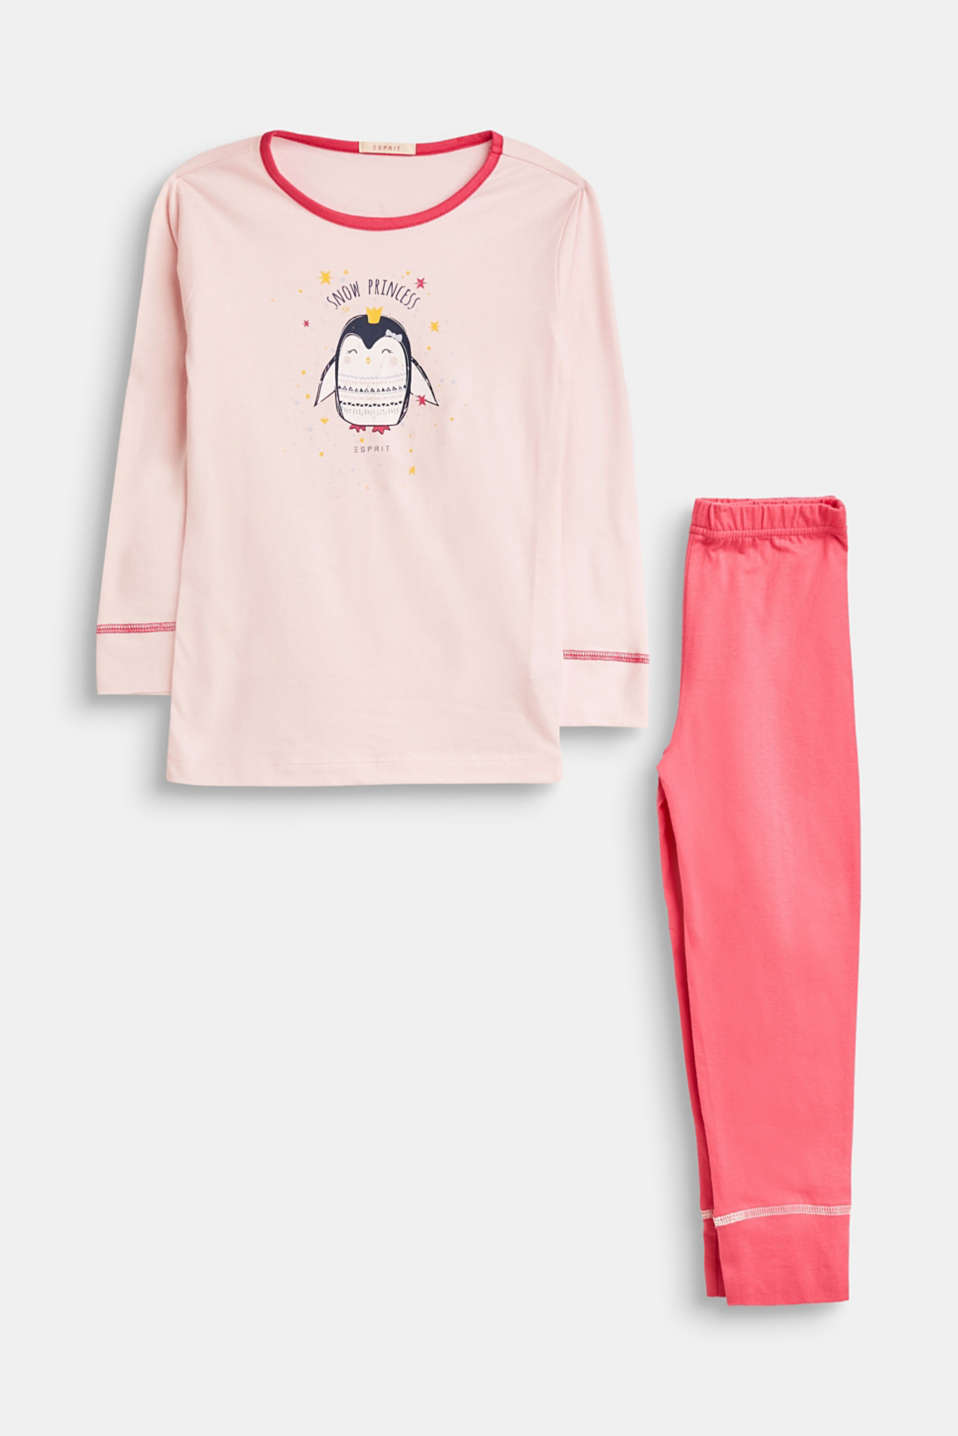 Esprit - Pyjamas with penguin print, 100% cotton